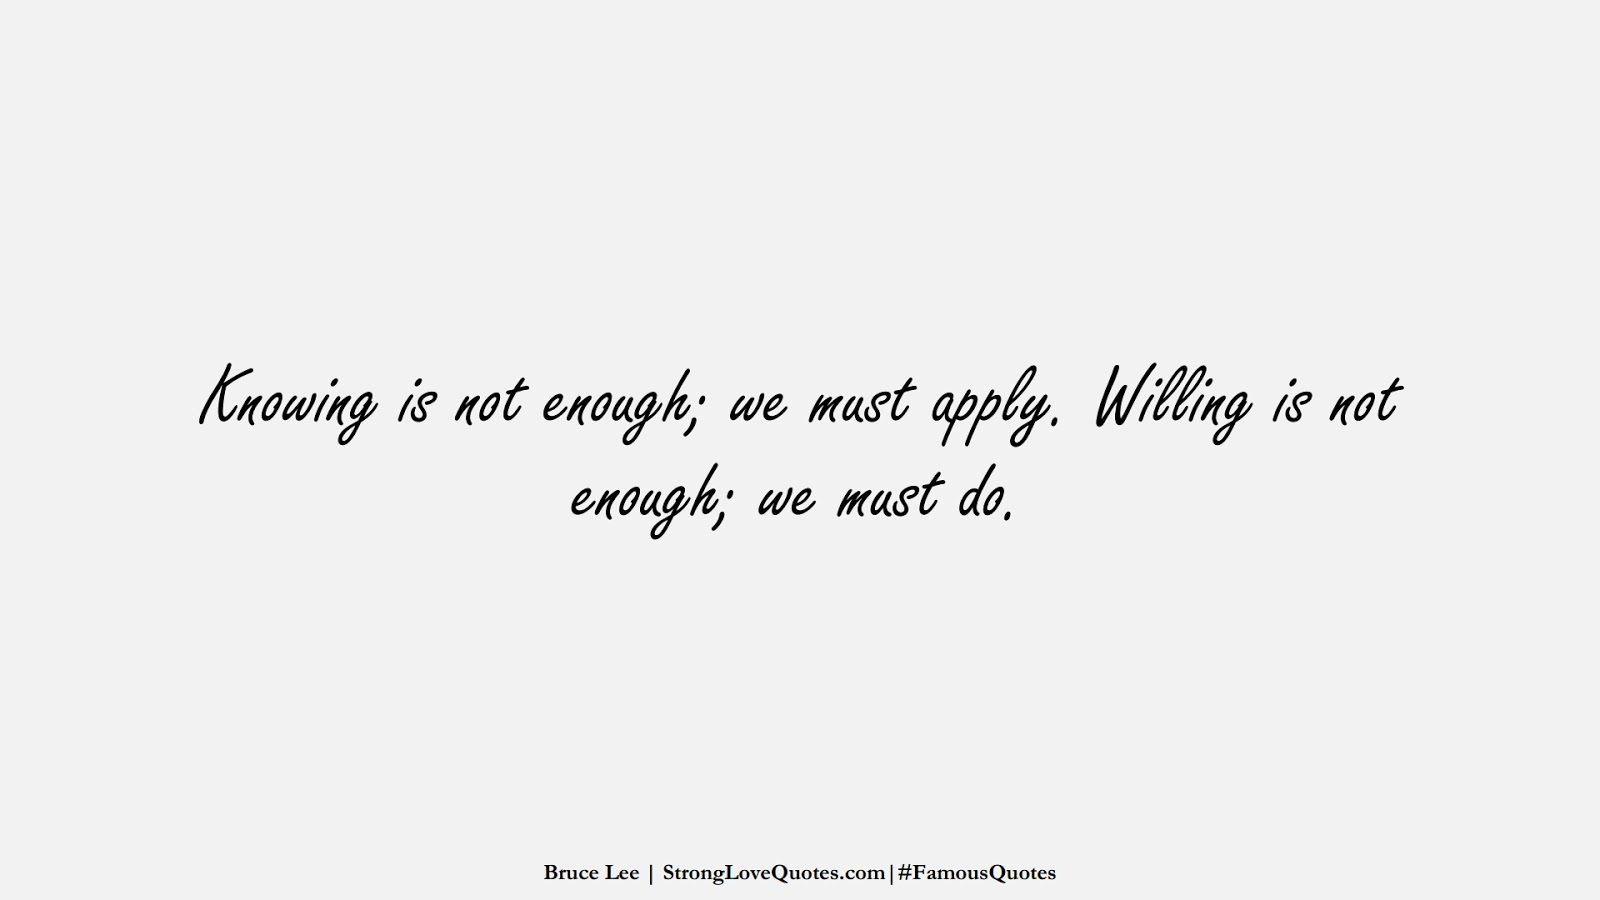 Knowing is not enough; we must apply. Willing is not enough; we must do. (Bruce Lee);  #FamousQuotes